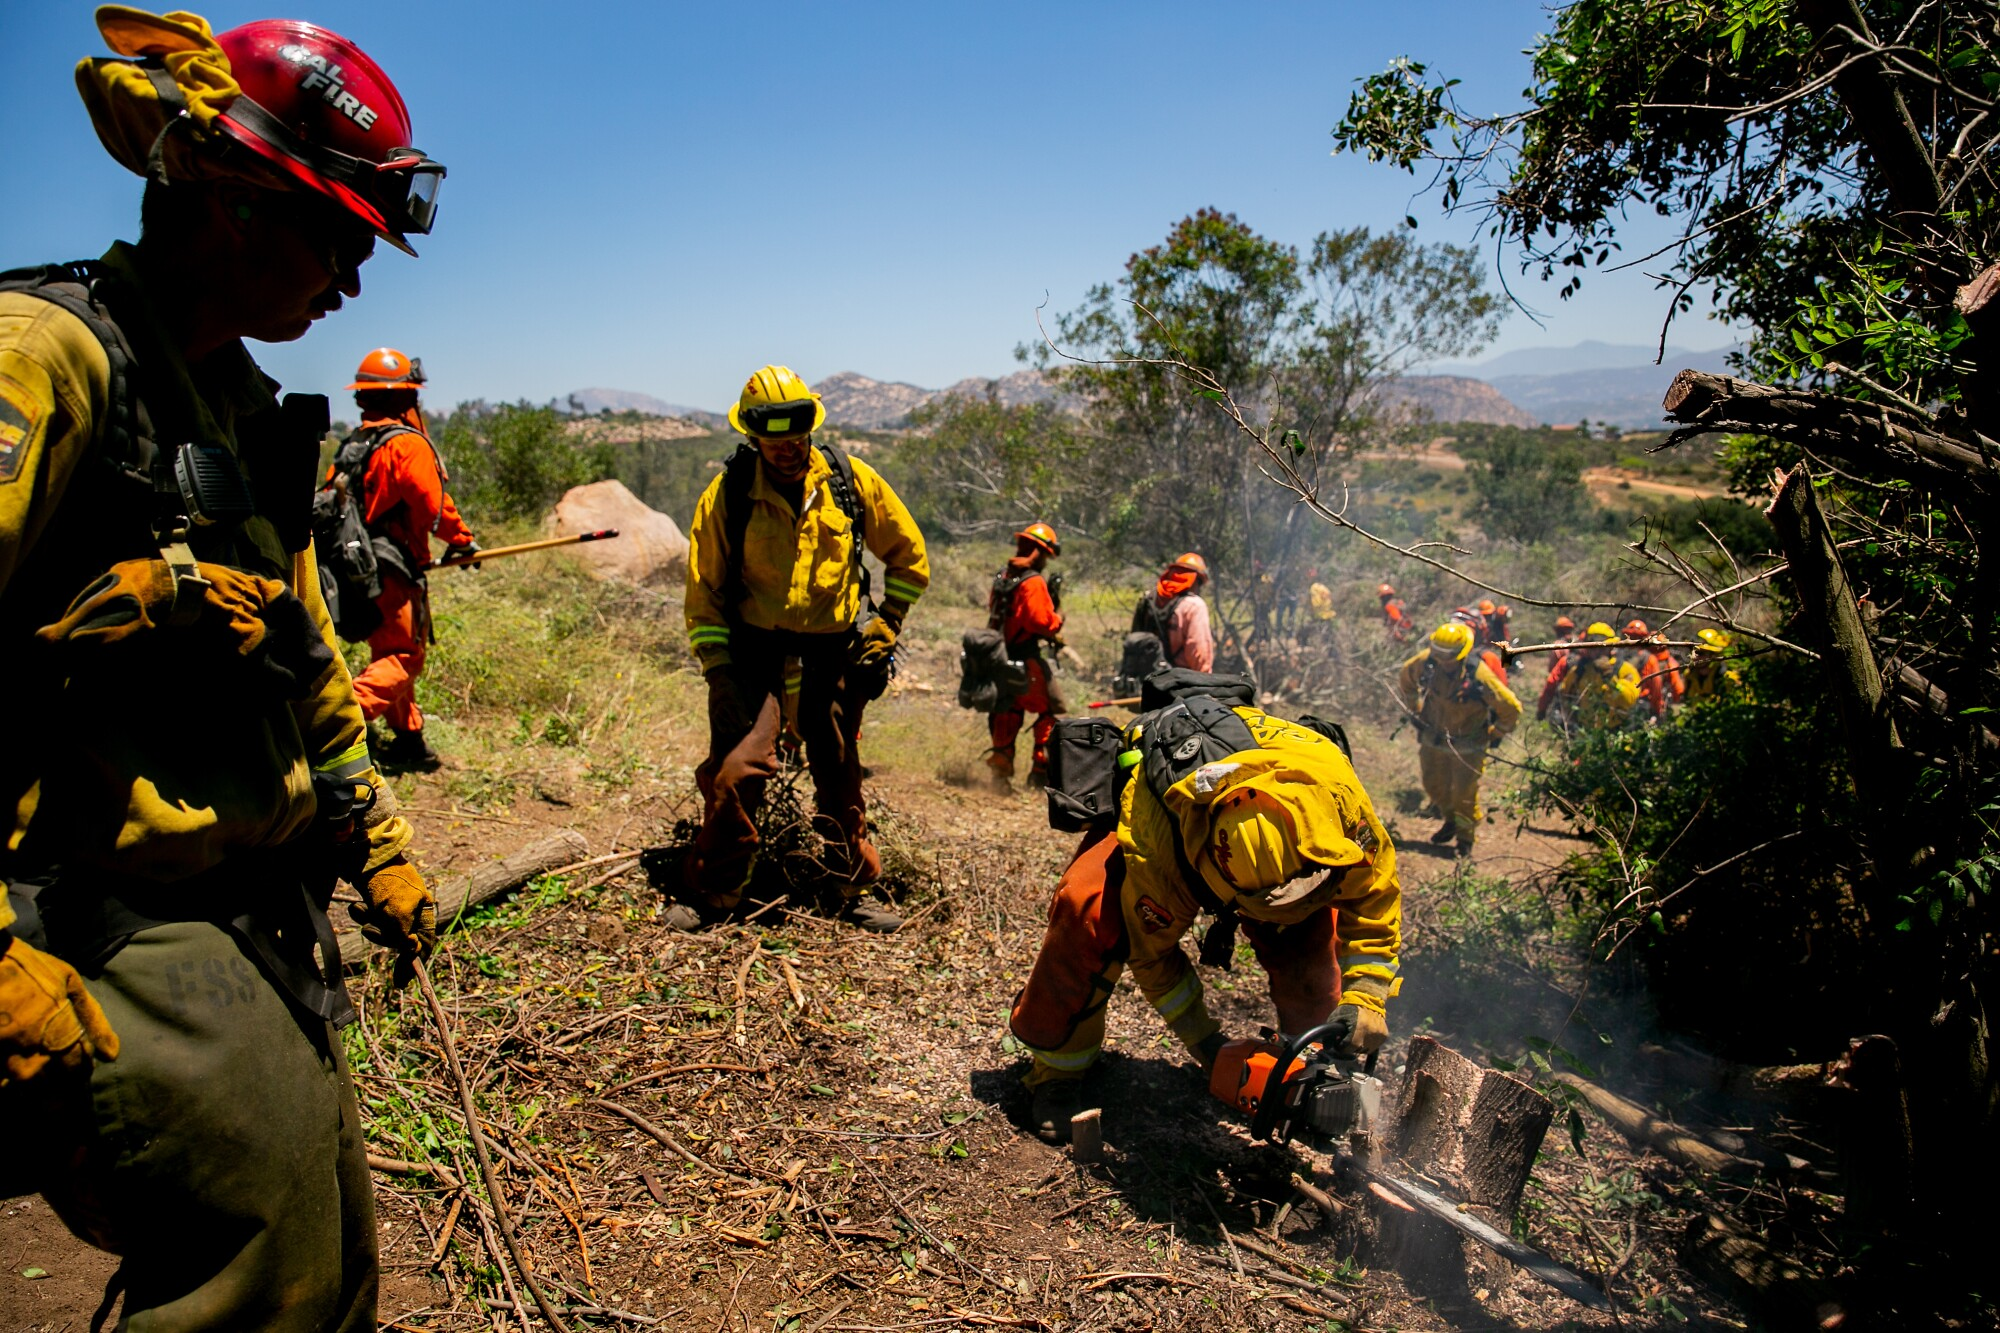 Cal Fire seasonal firefighters work alongside California Department of Corrections firefighters to create fuel breaks around homes while also re-certifying their chainsaw training on June 28, 2019 in Crest, California.